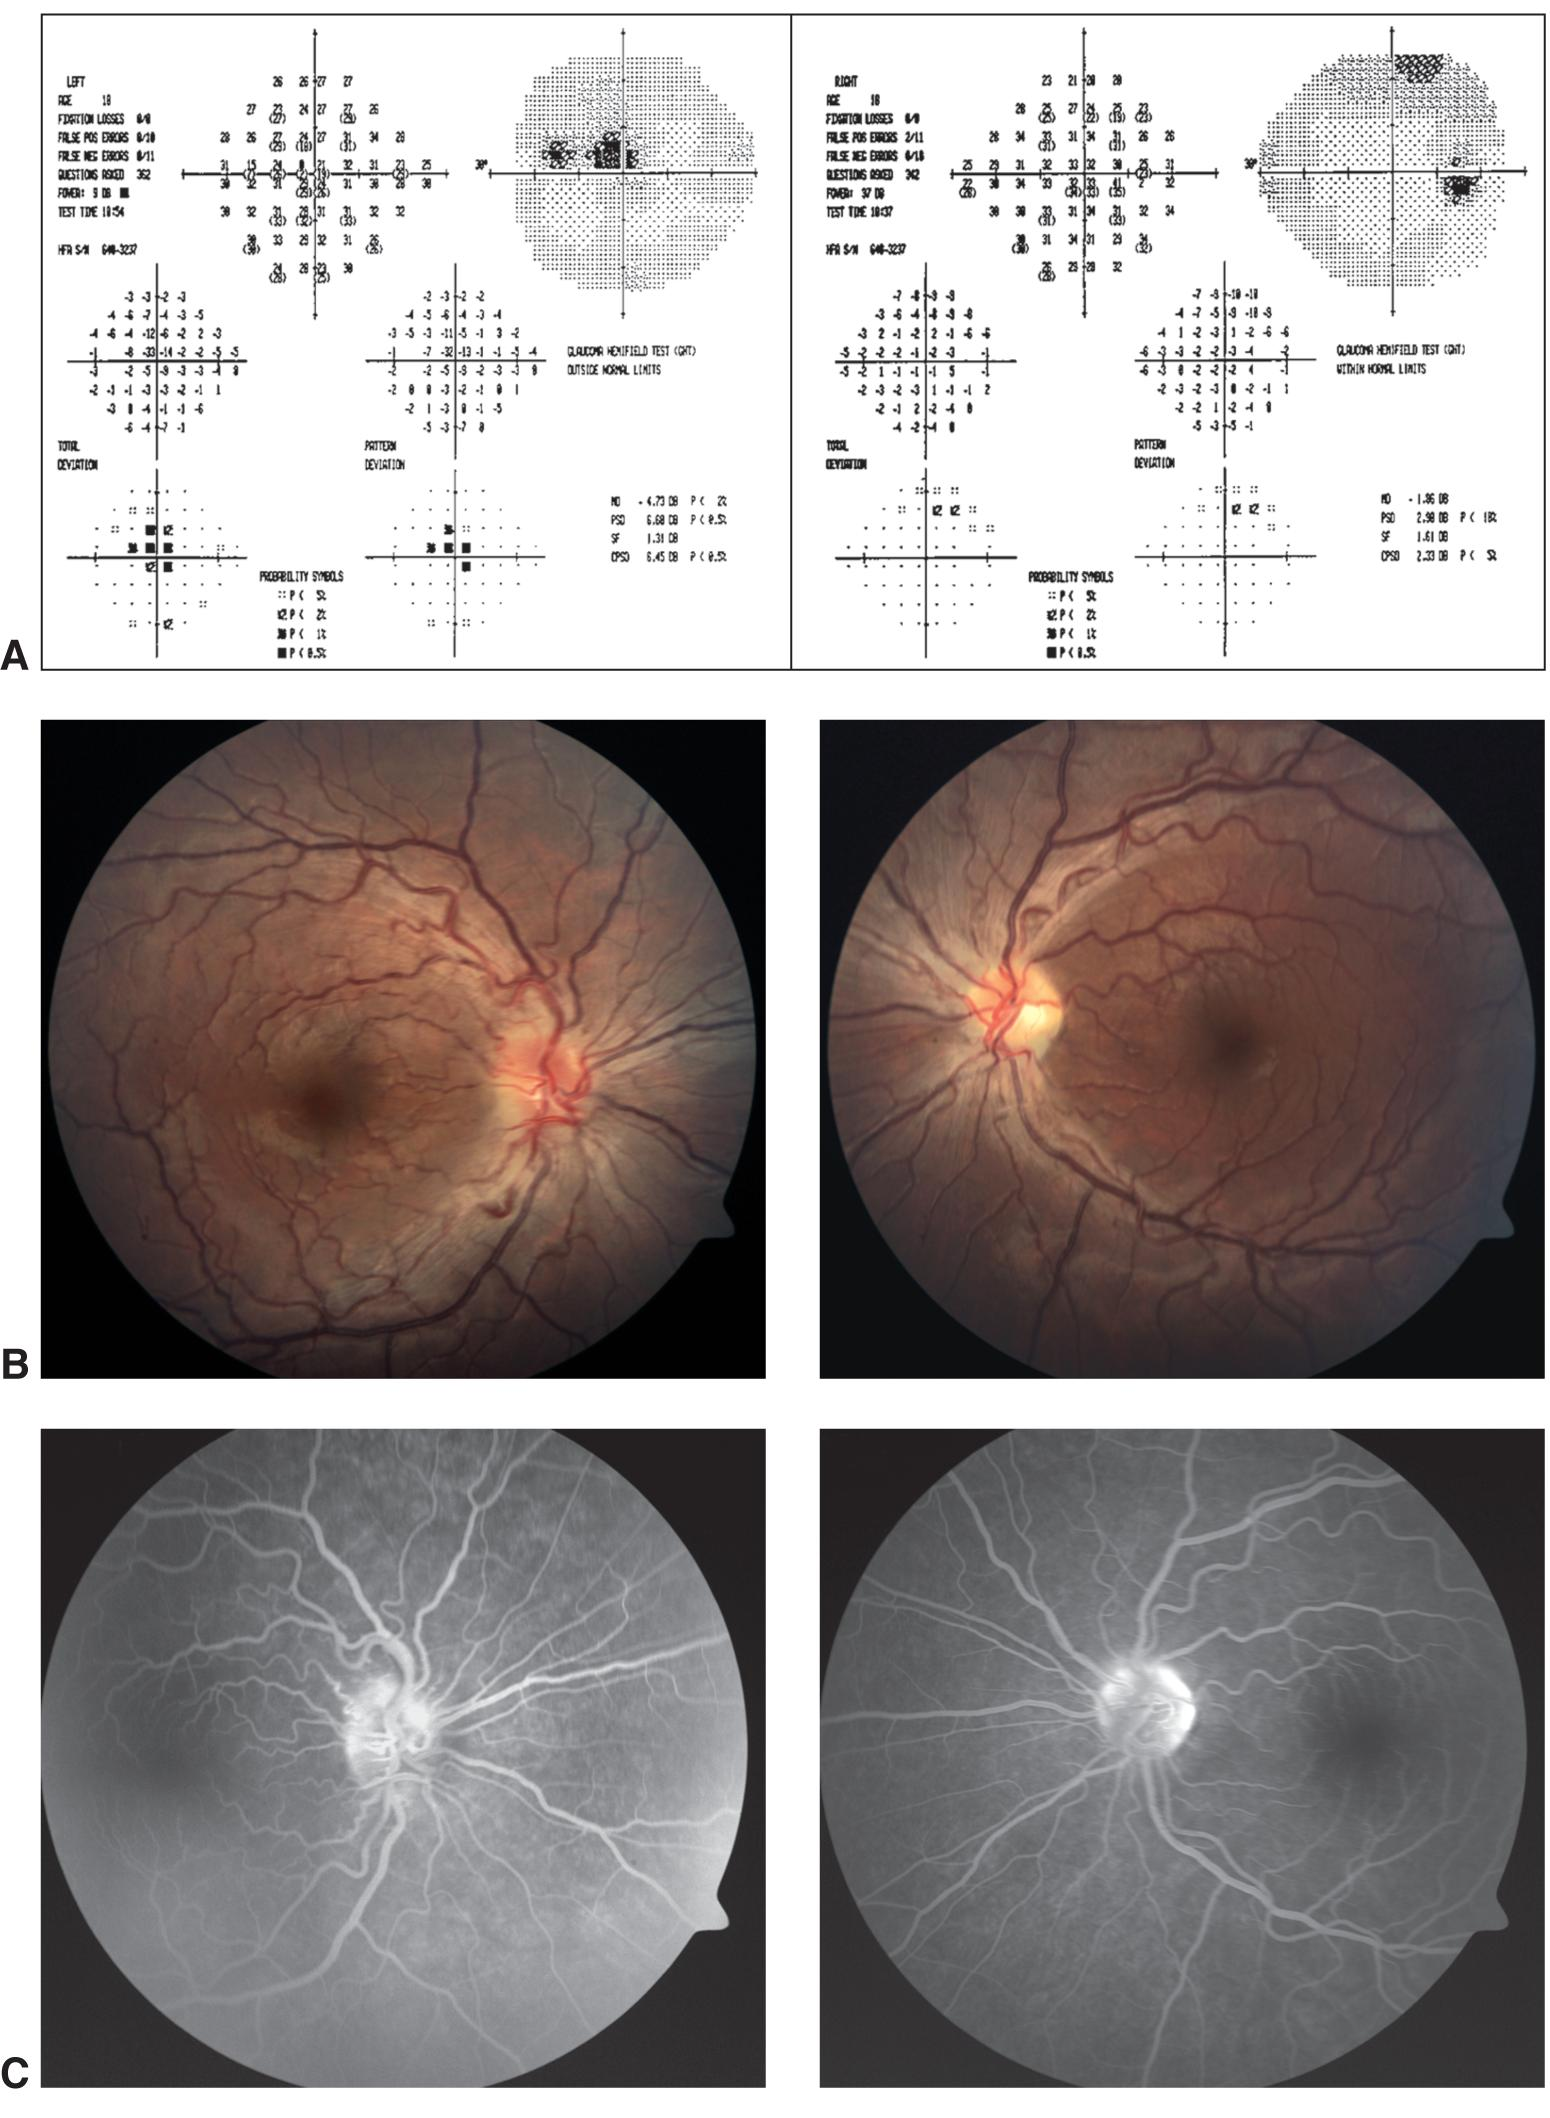 mitochondrial dysfunction in leber's hereditary optic Leber hereditary optic neuropathy (lhon) is a mitochondrial genetic disease that preferentially causes blindness in young adult males, affecting about 1 in 25 000 of the british population.